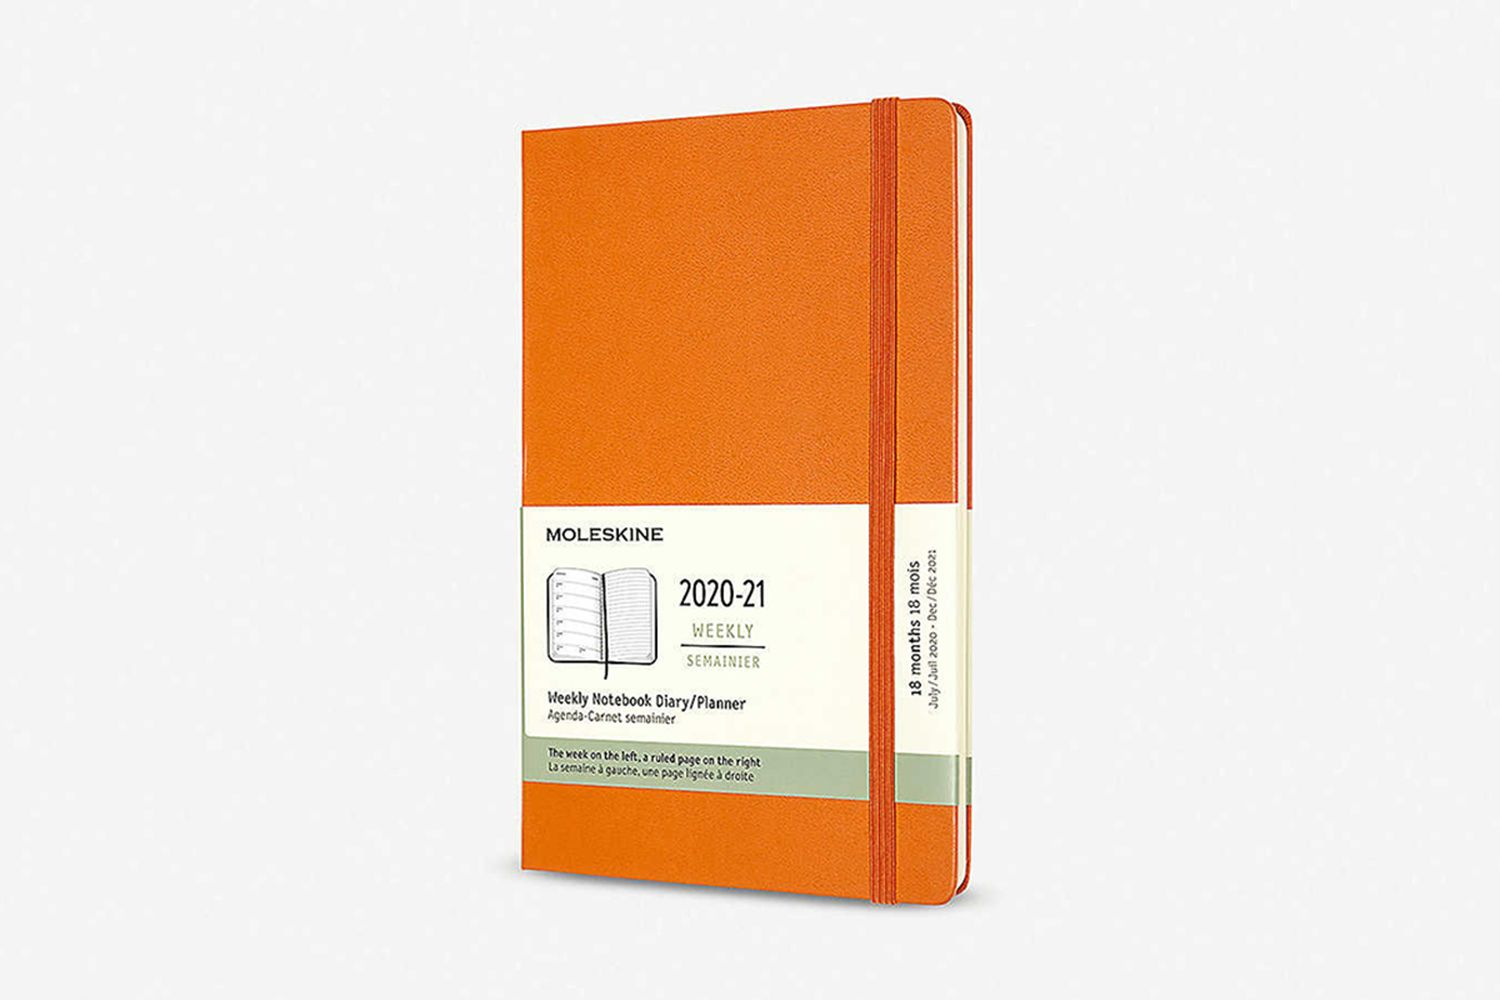 18-Month Hard-Cover Weekly Planner